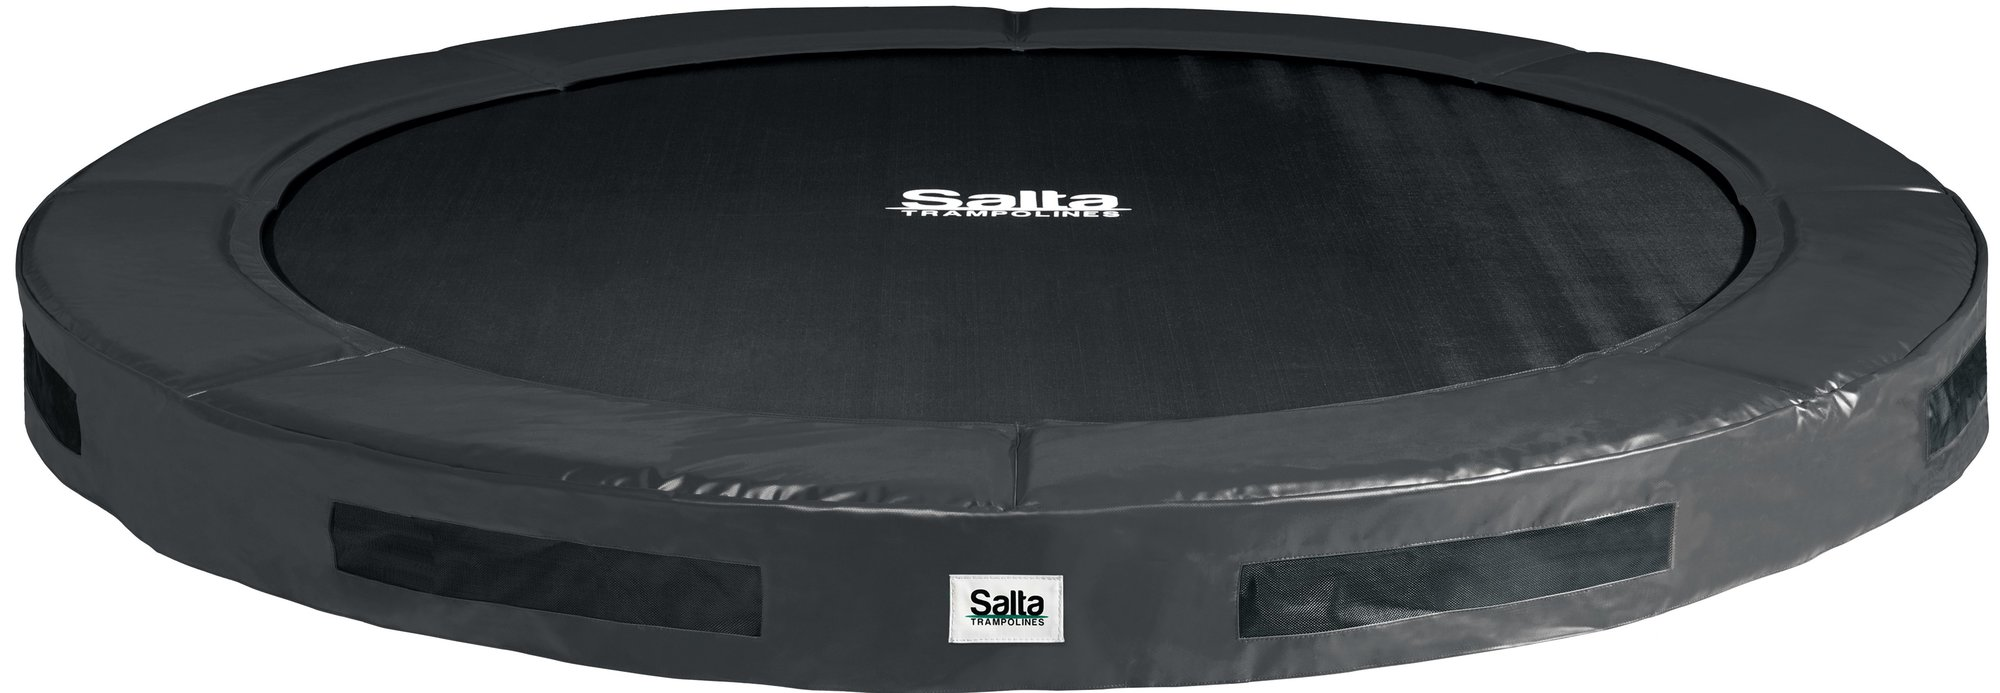 Salta Excellent Ground trampoline